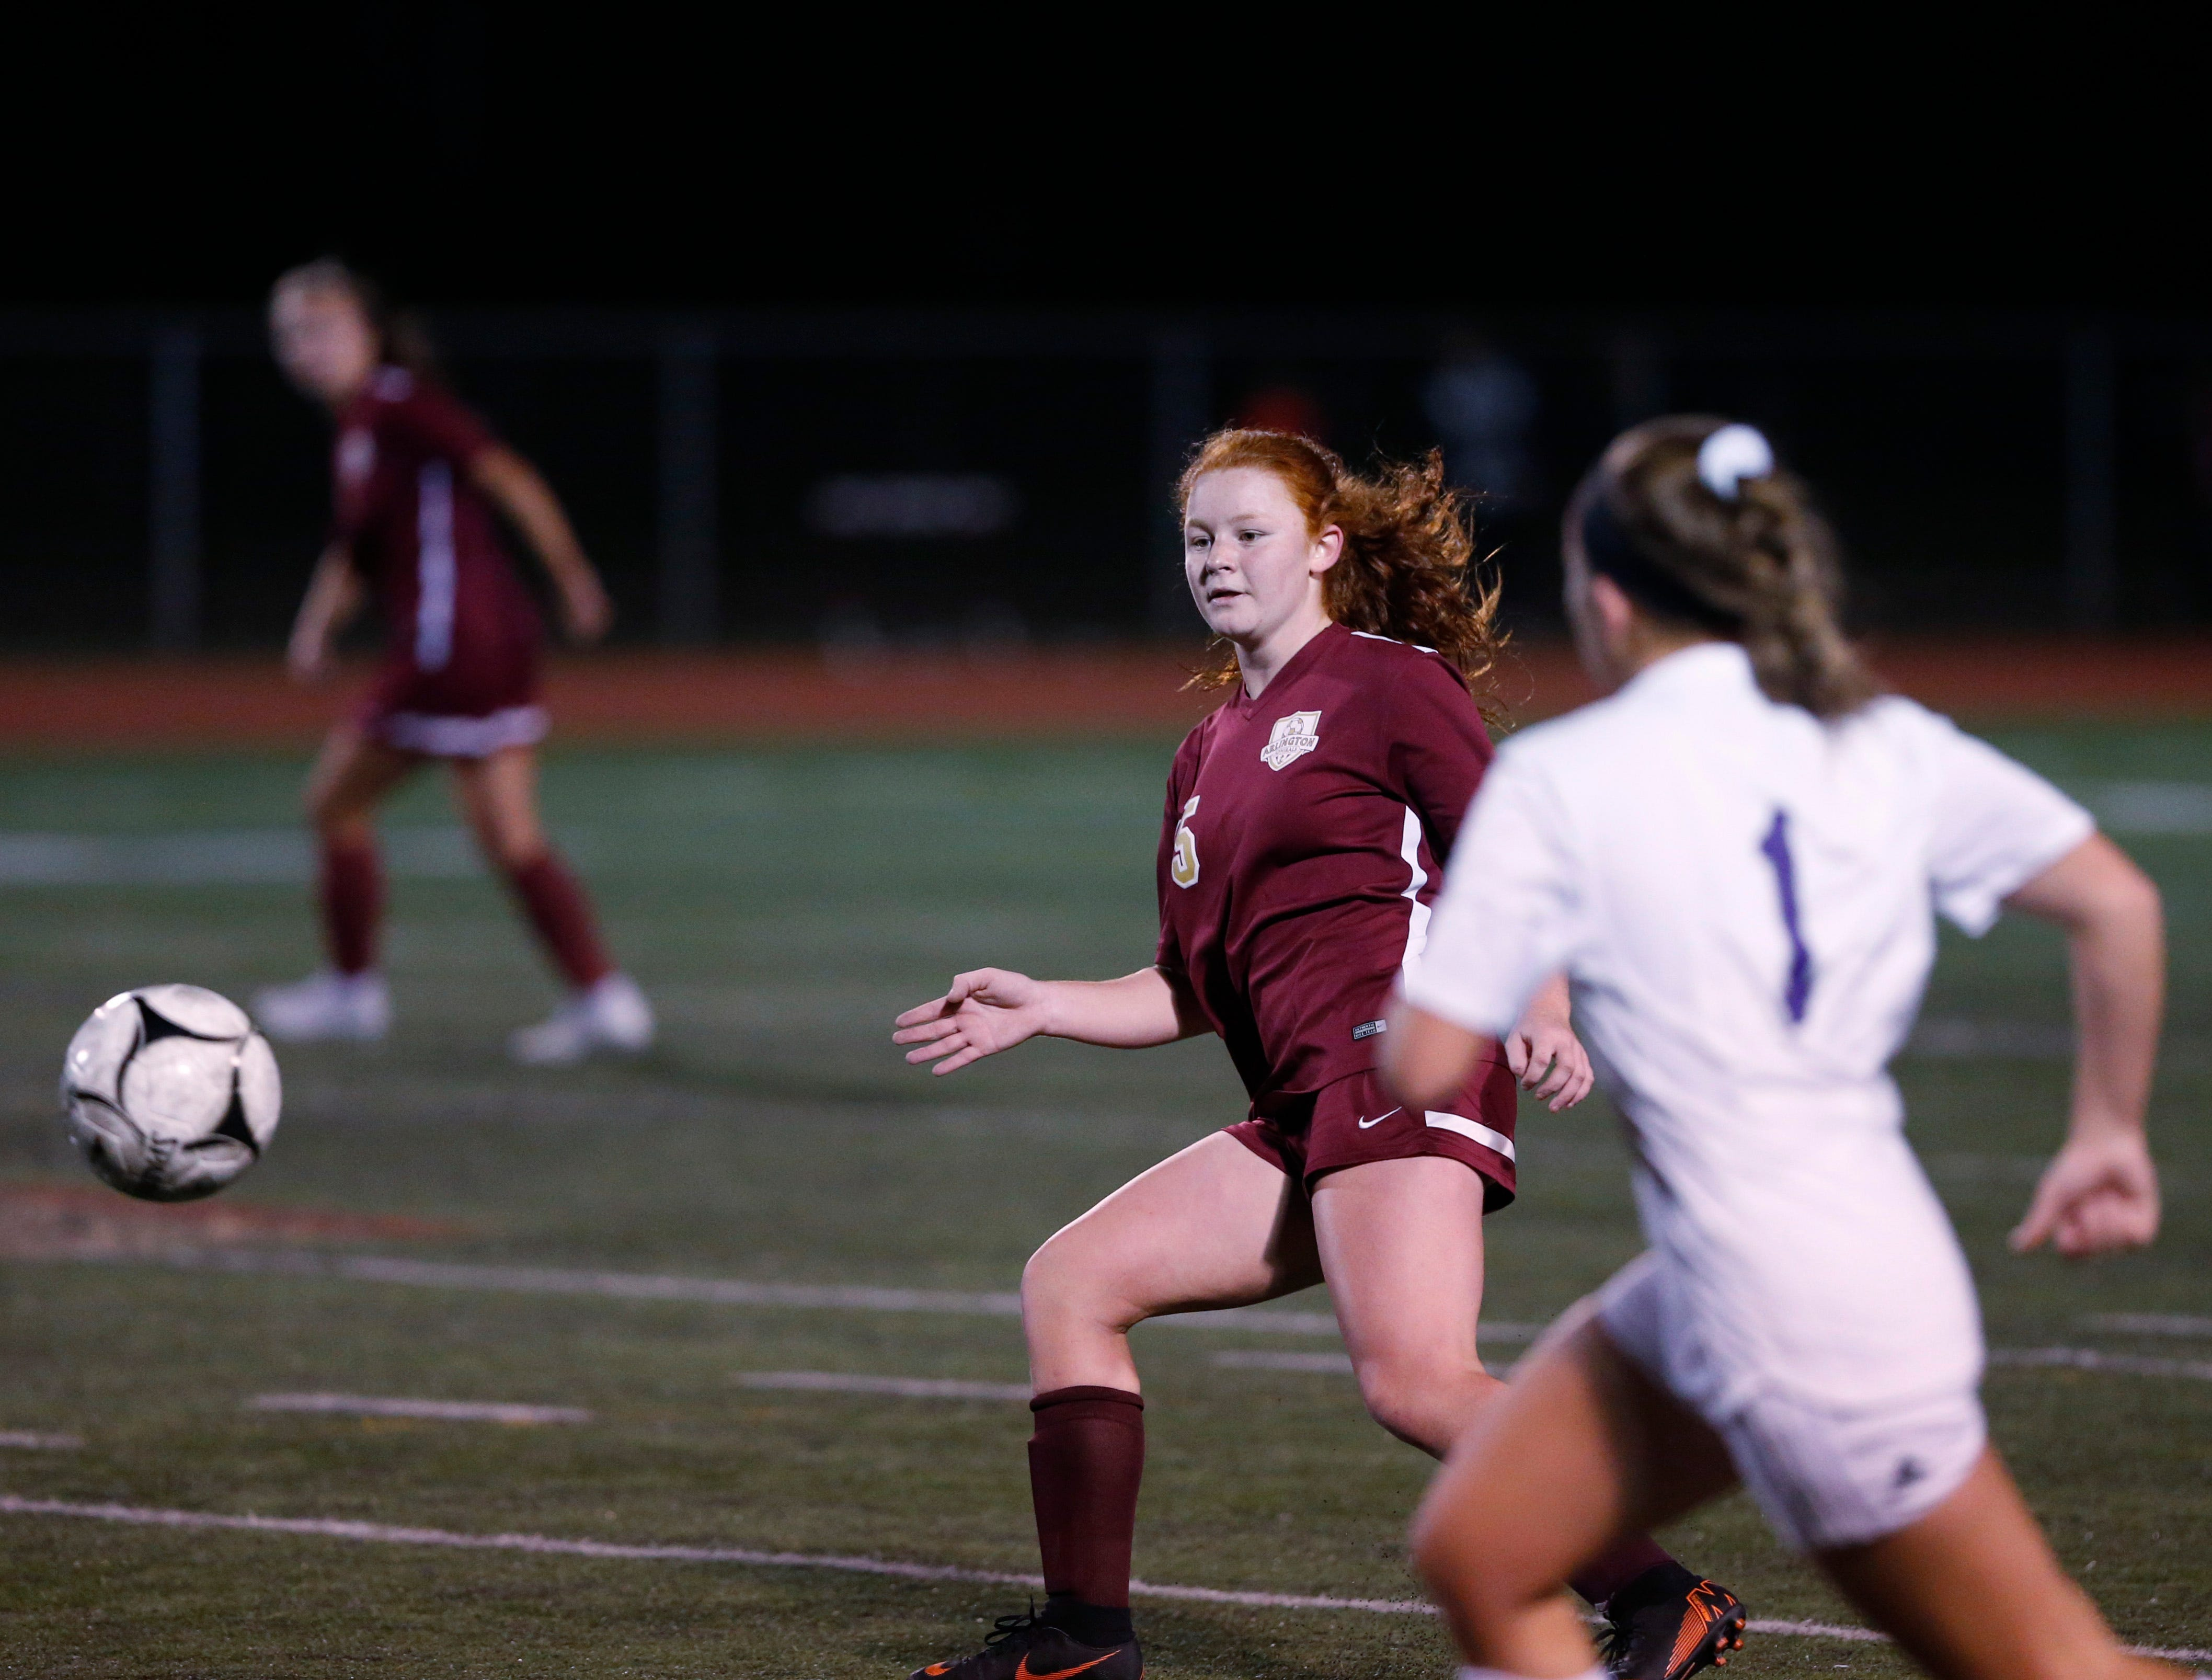 Action from Wednesday's class AA regional semifinal between Arlington and Monroe-Woodbury in Freedom Plains on October 31, 2018.